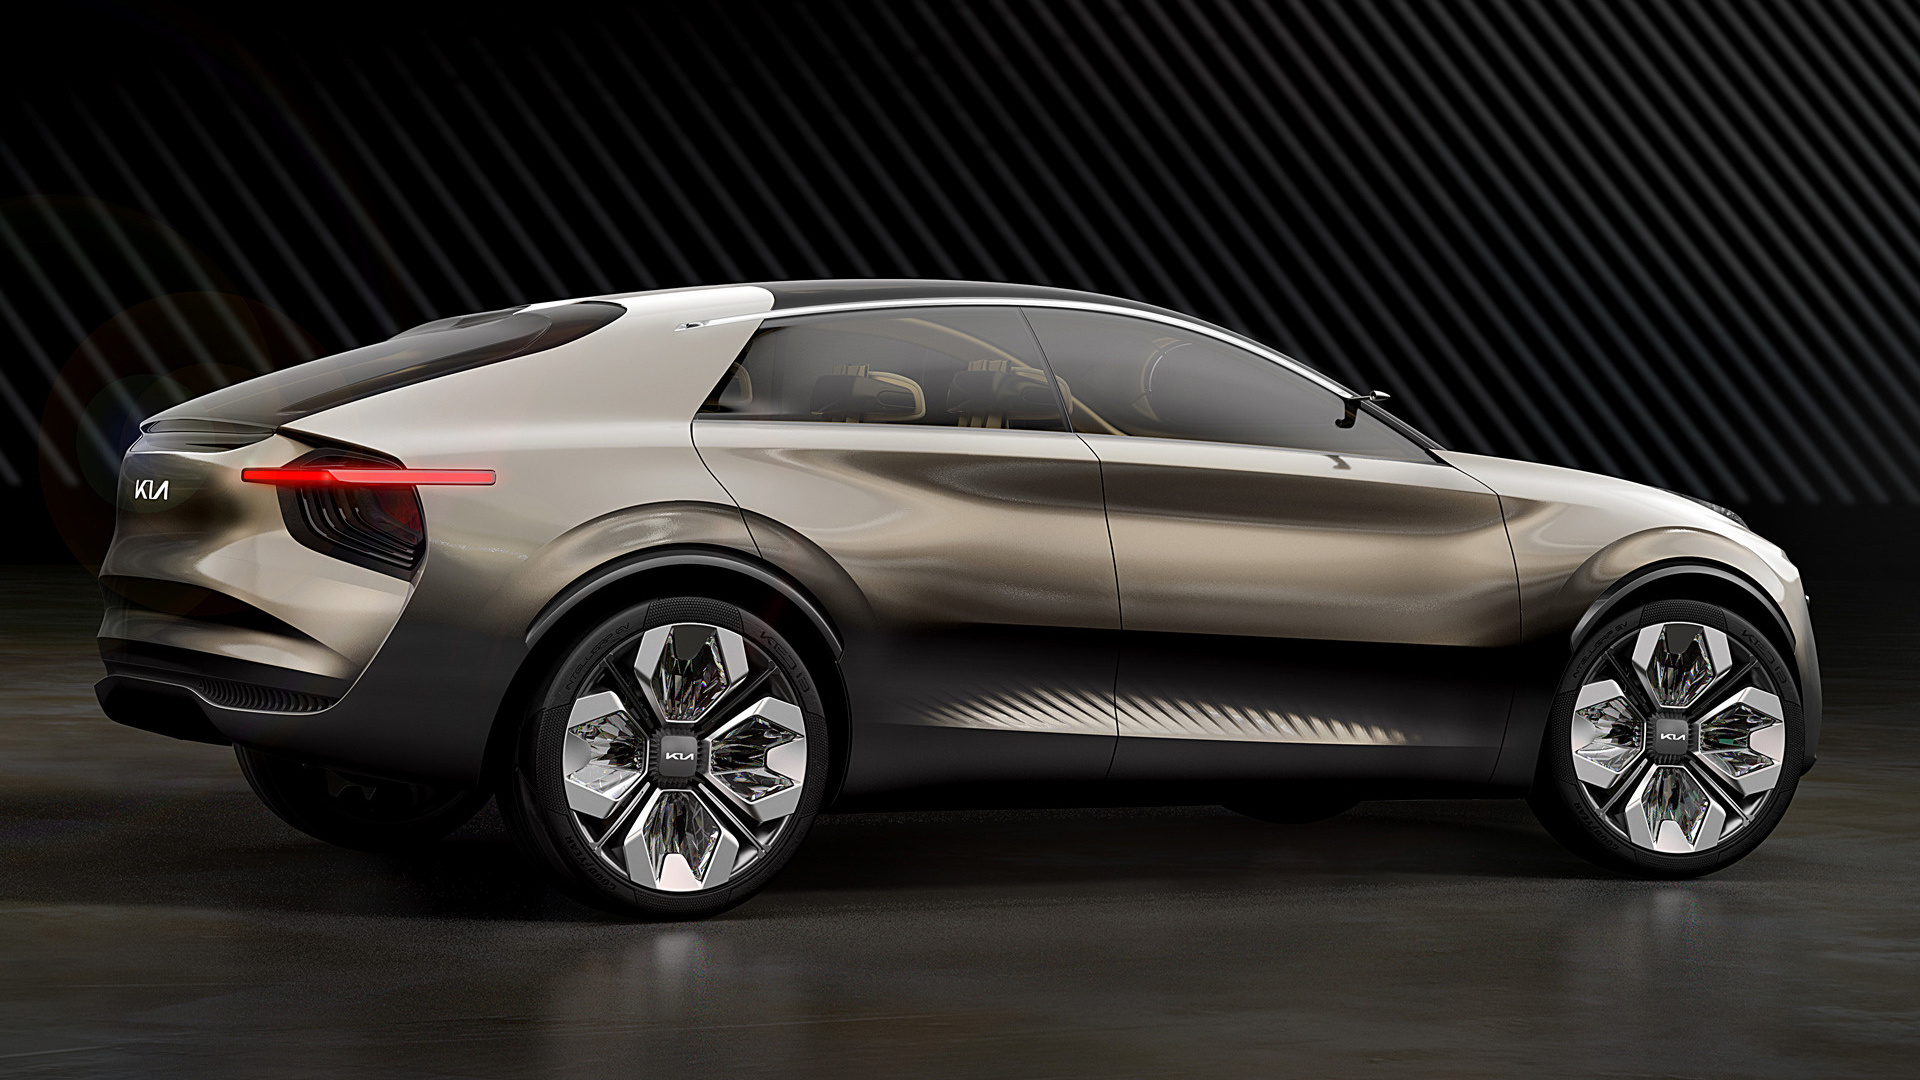 2019 Imagine by Kia Concept - Wallpapers and HD Images ...